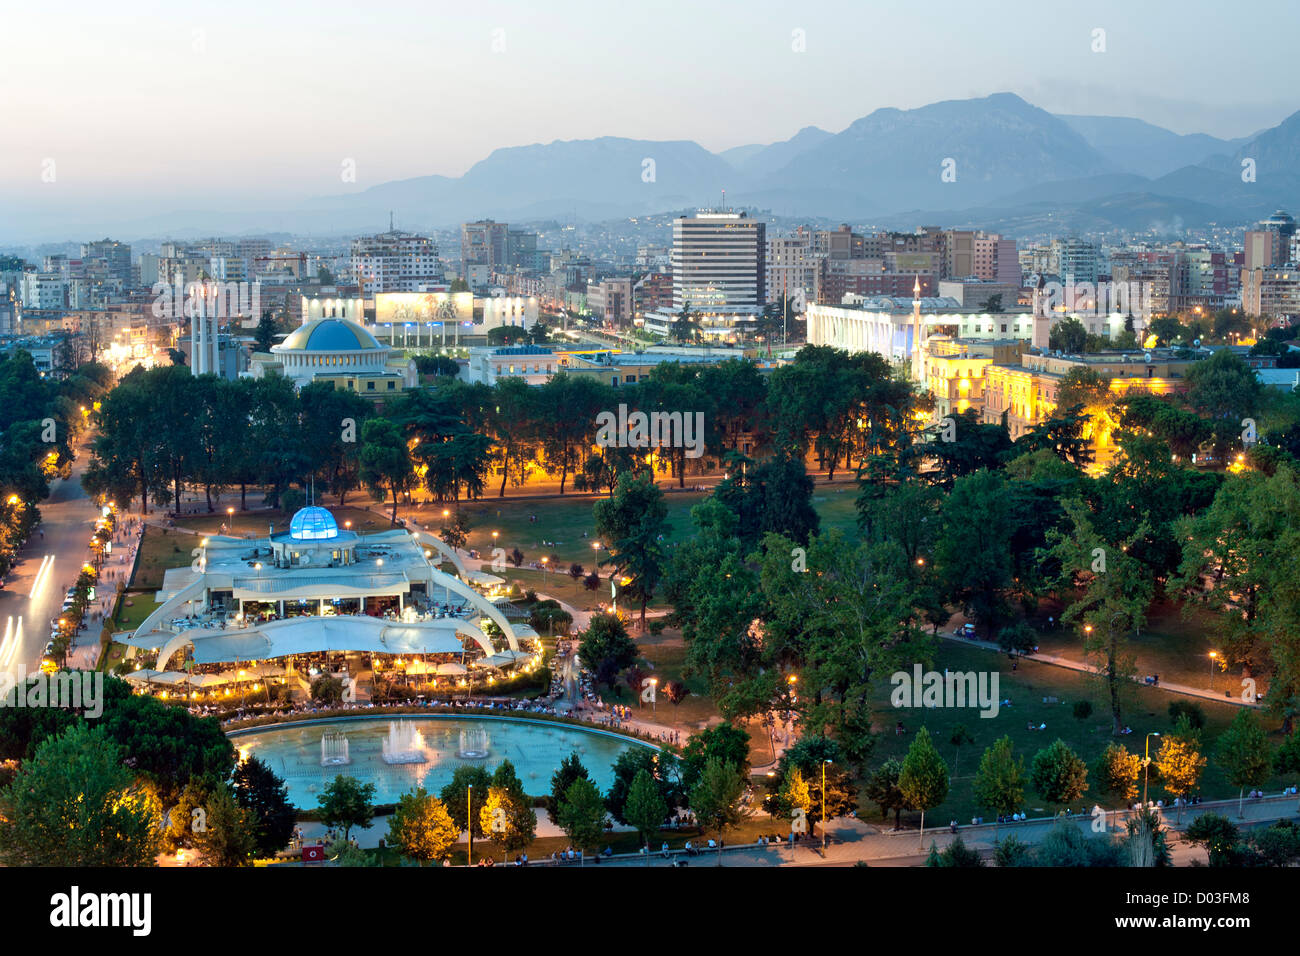 Dusk view of Tirana, the capital of Albania. In the foreground is Rinia Park. Stock Photo